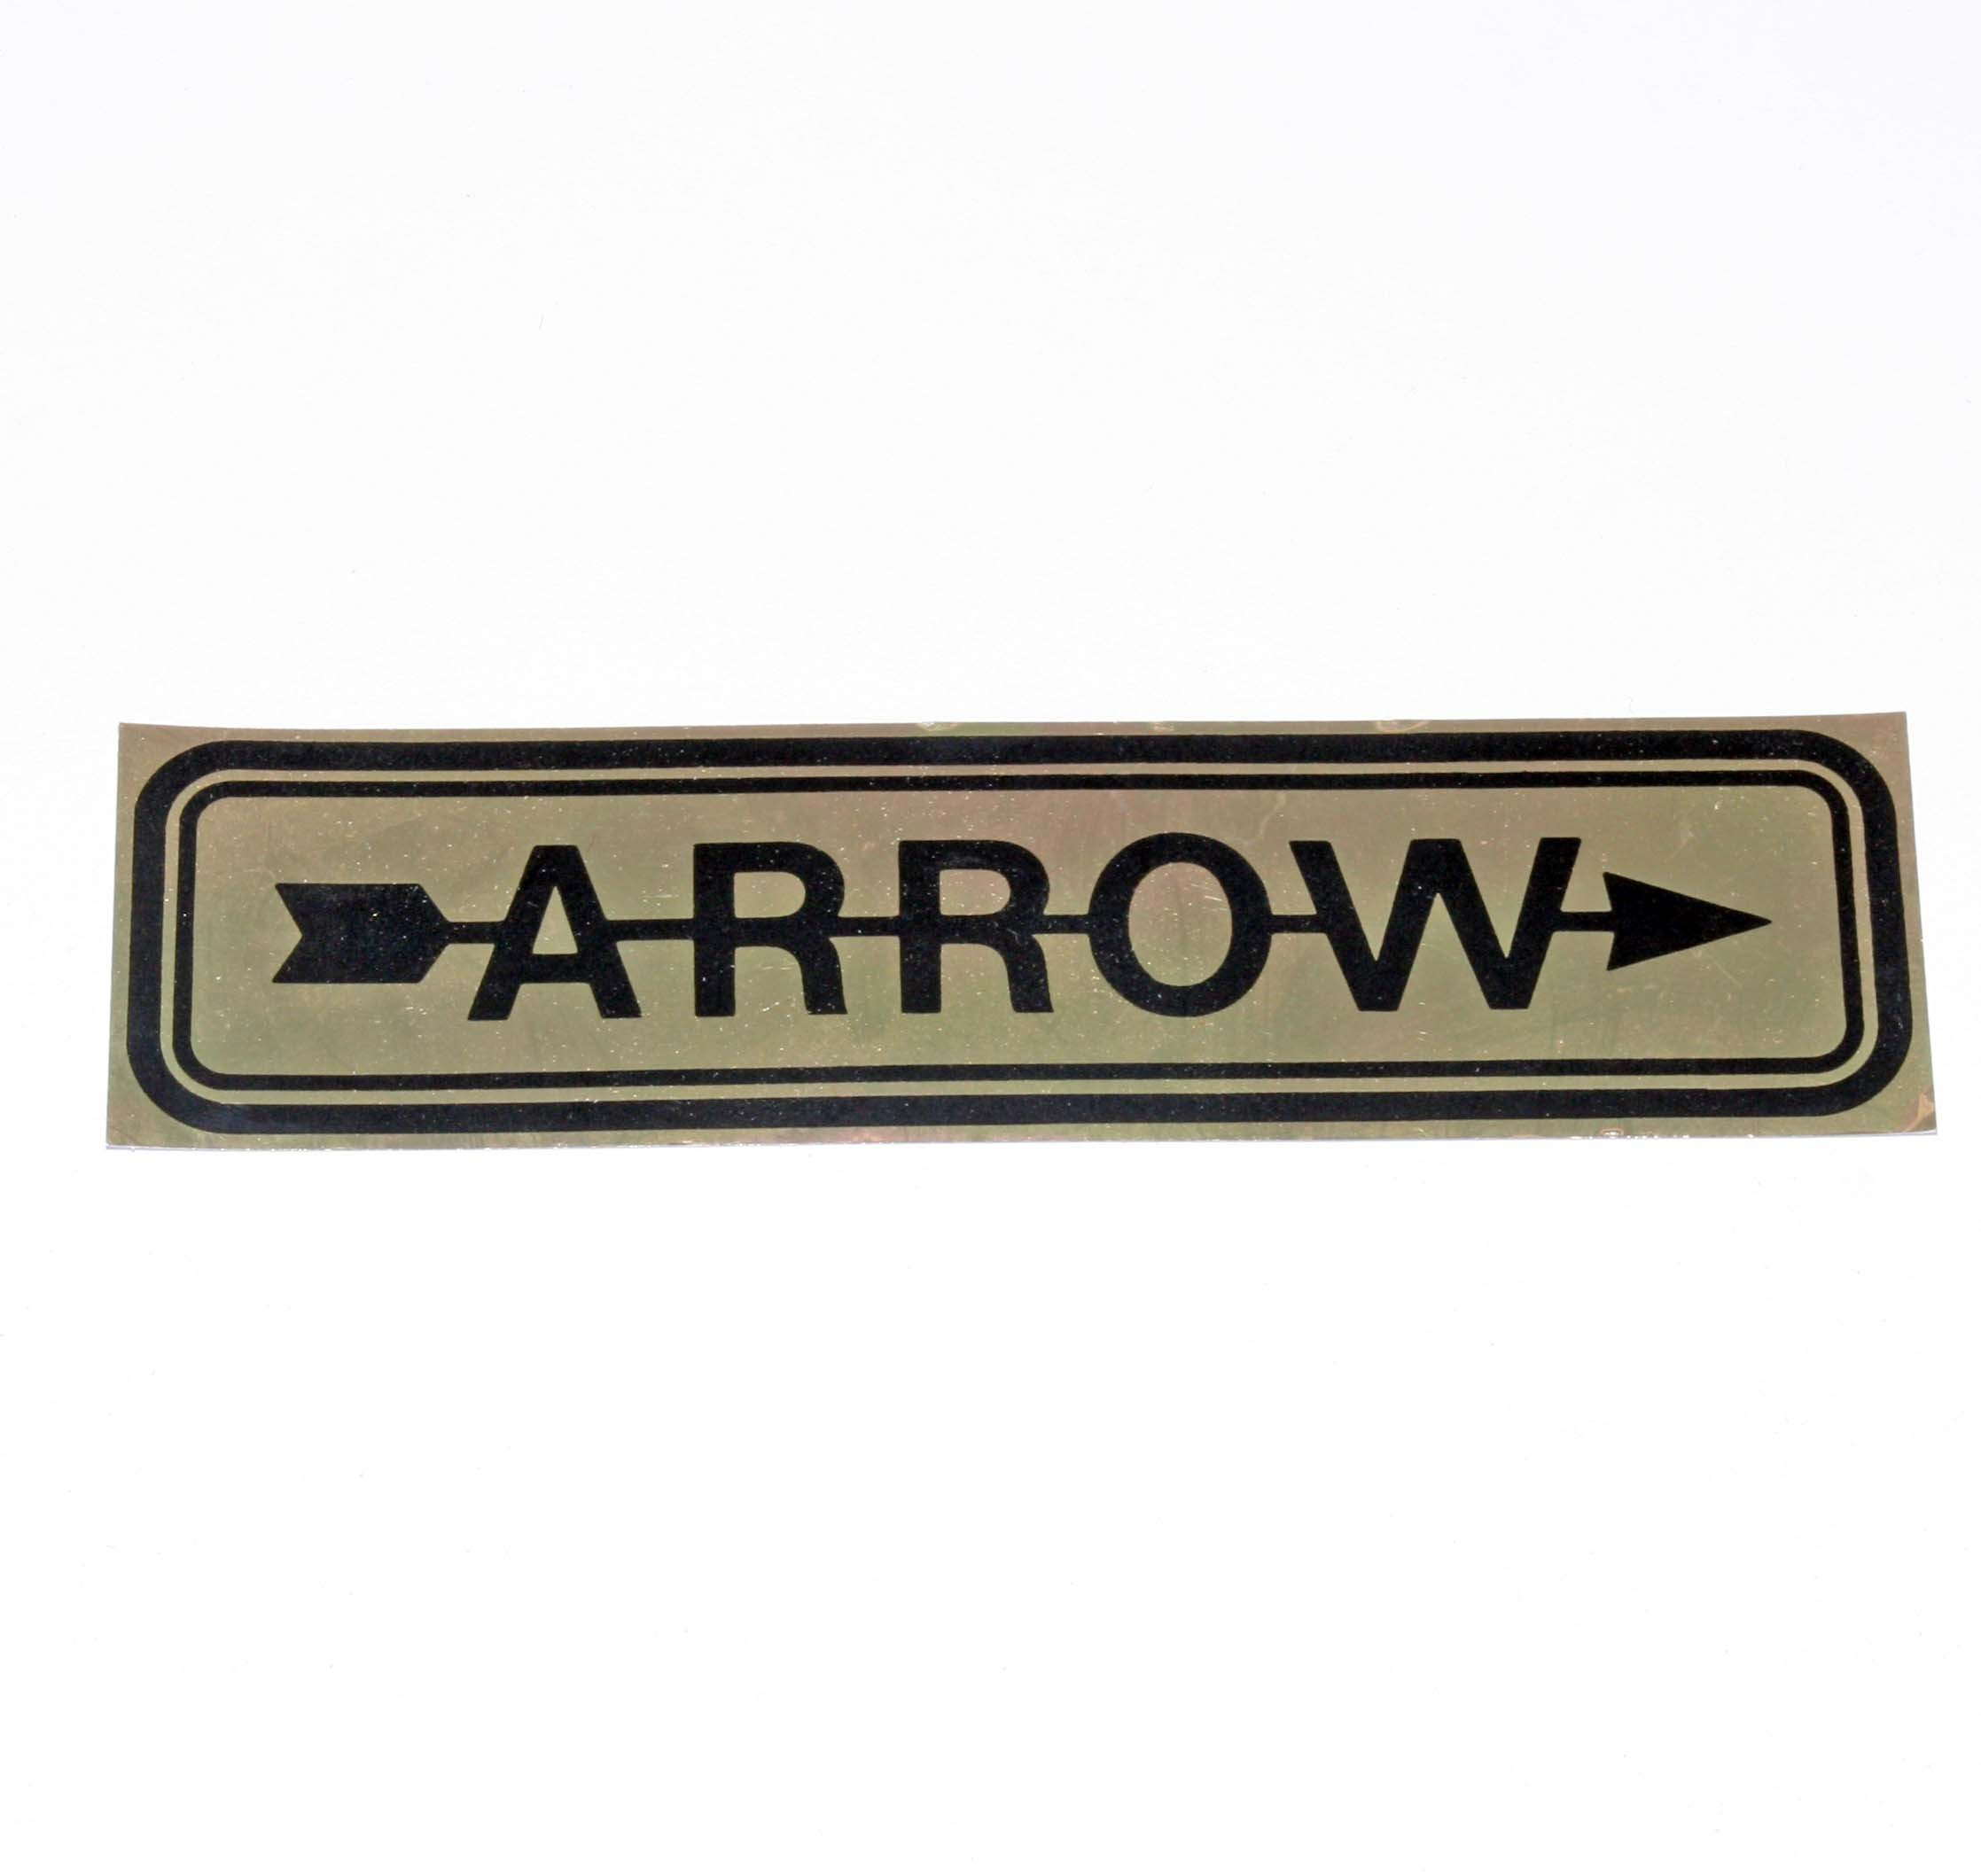 ARROW STICKER DECAL 160 x 40